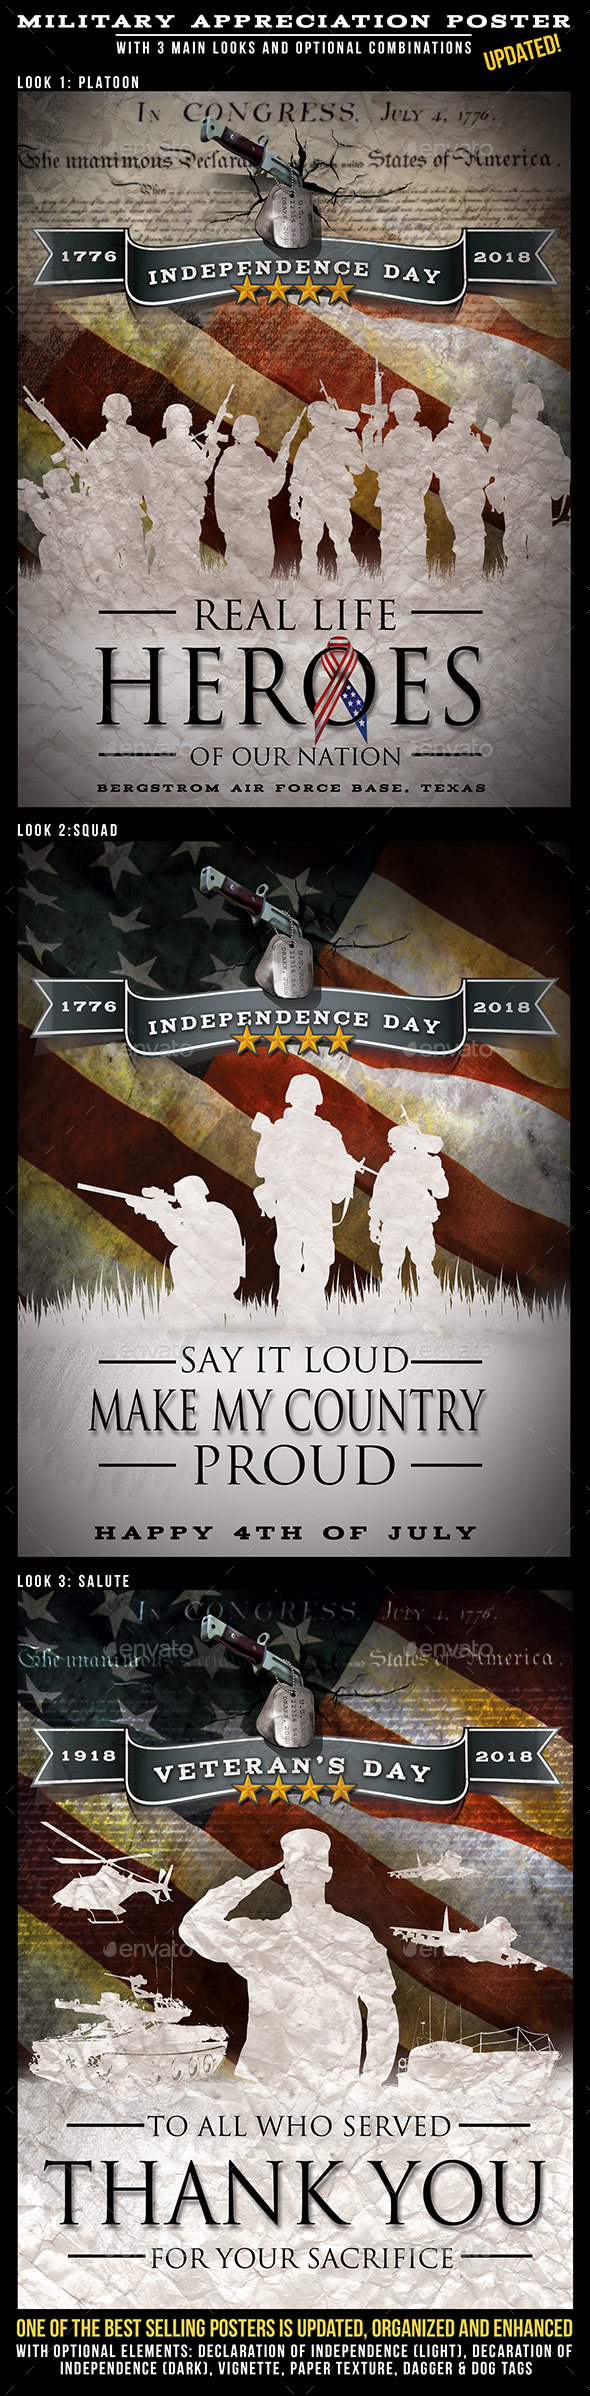 Independence Day Military Themed Design for Posters \u0026 Flyers